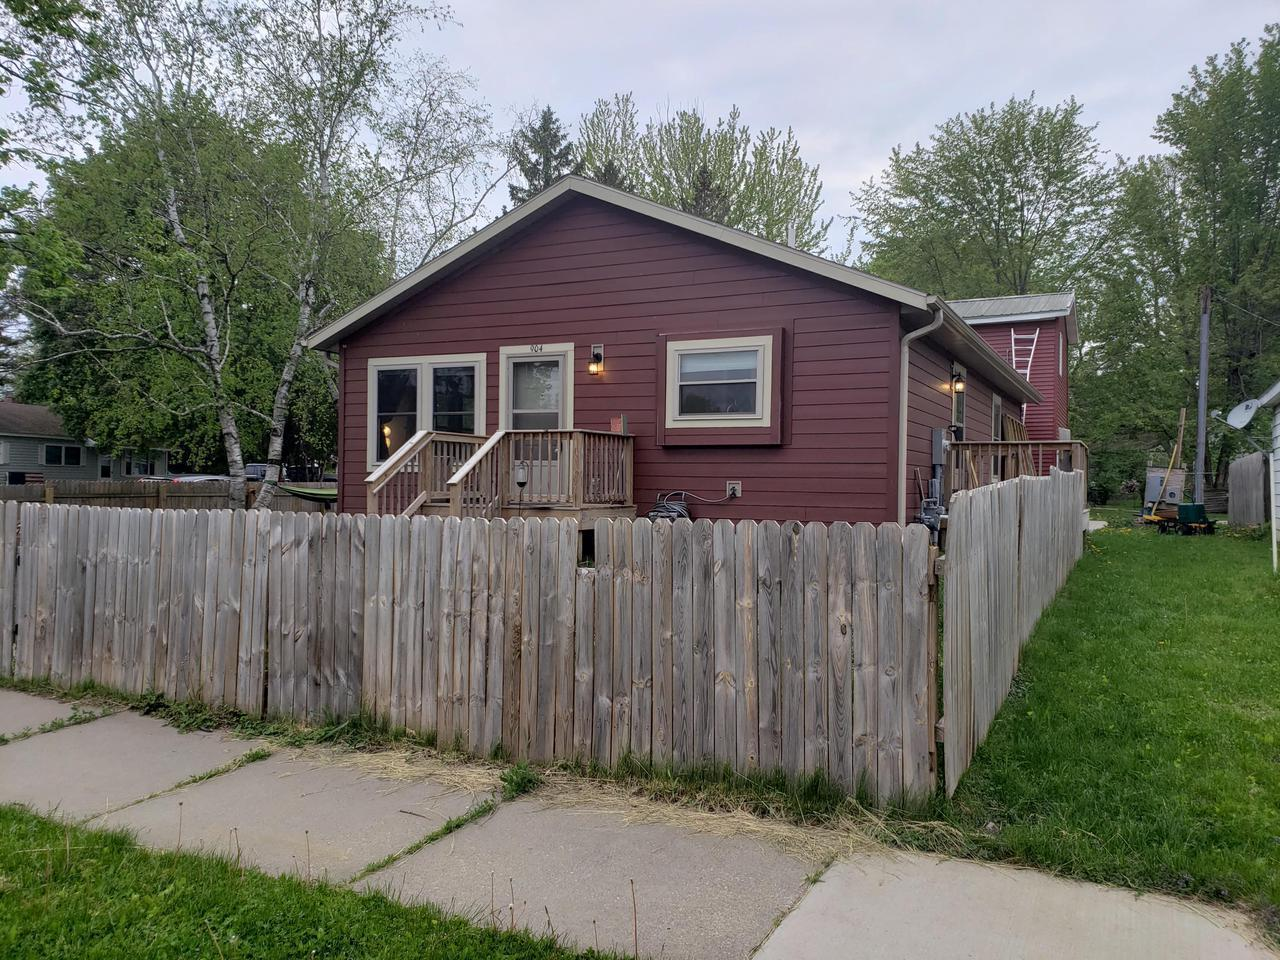 904 angelo rd sparta wi 54656 mls 1679994 redfin redfin